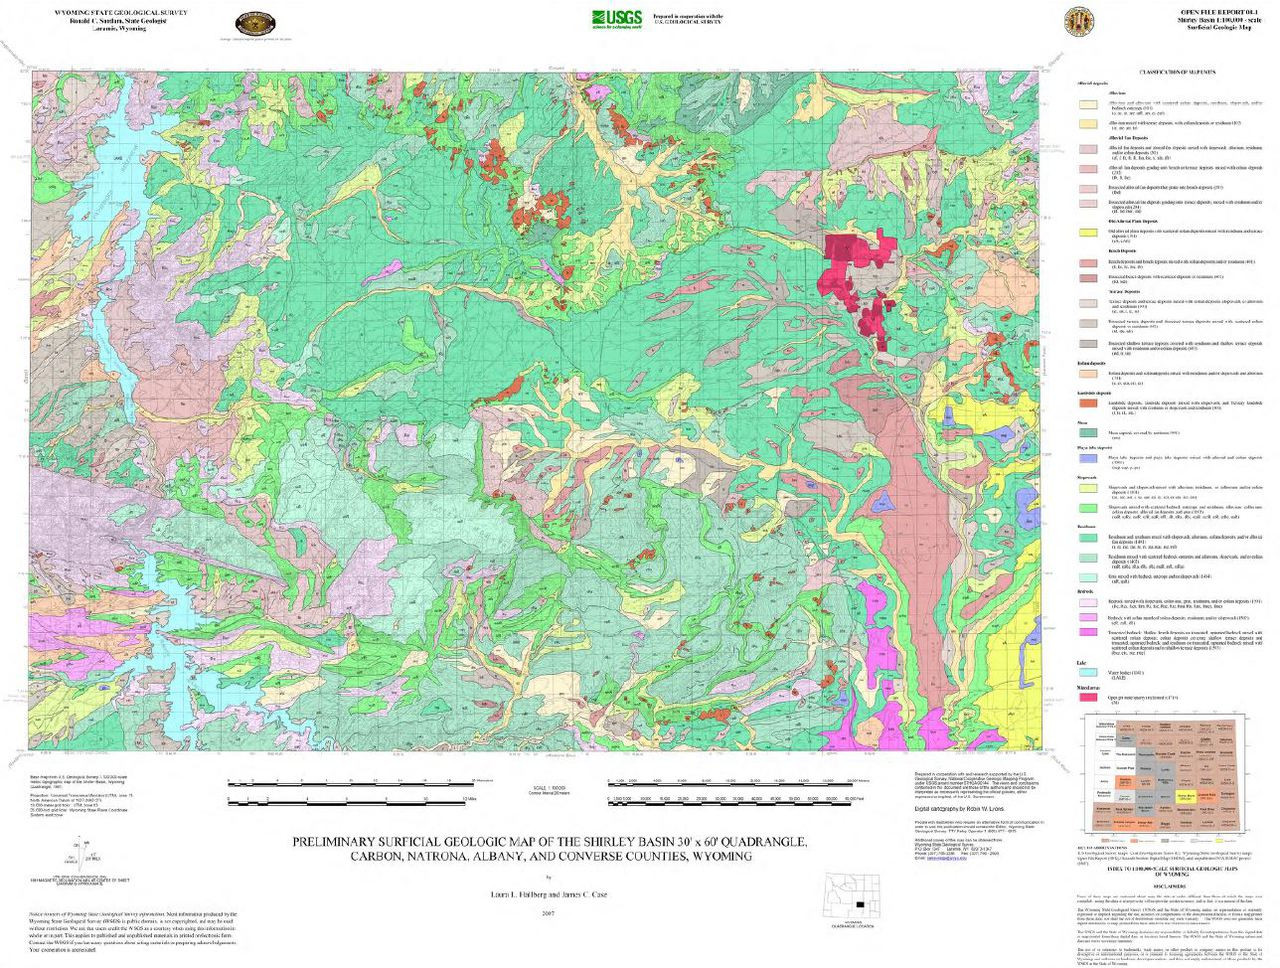 Preliminary Surficial Geologic Map Of The Shirley Basin 30 X 60